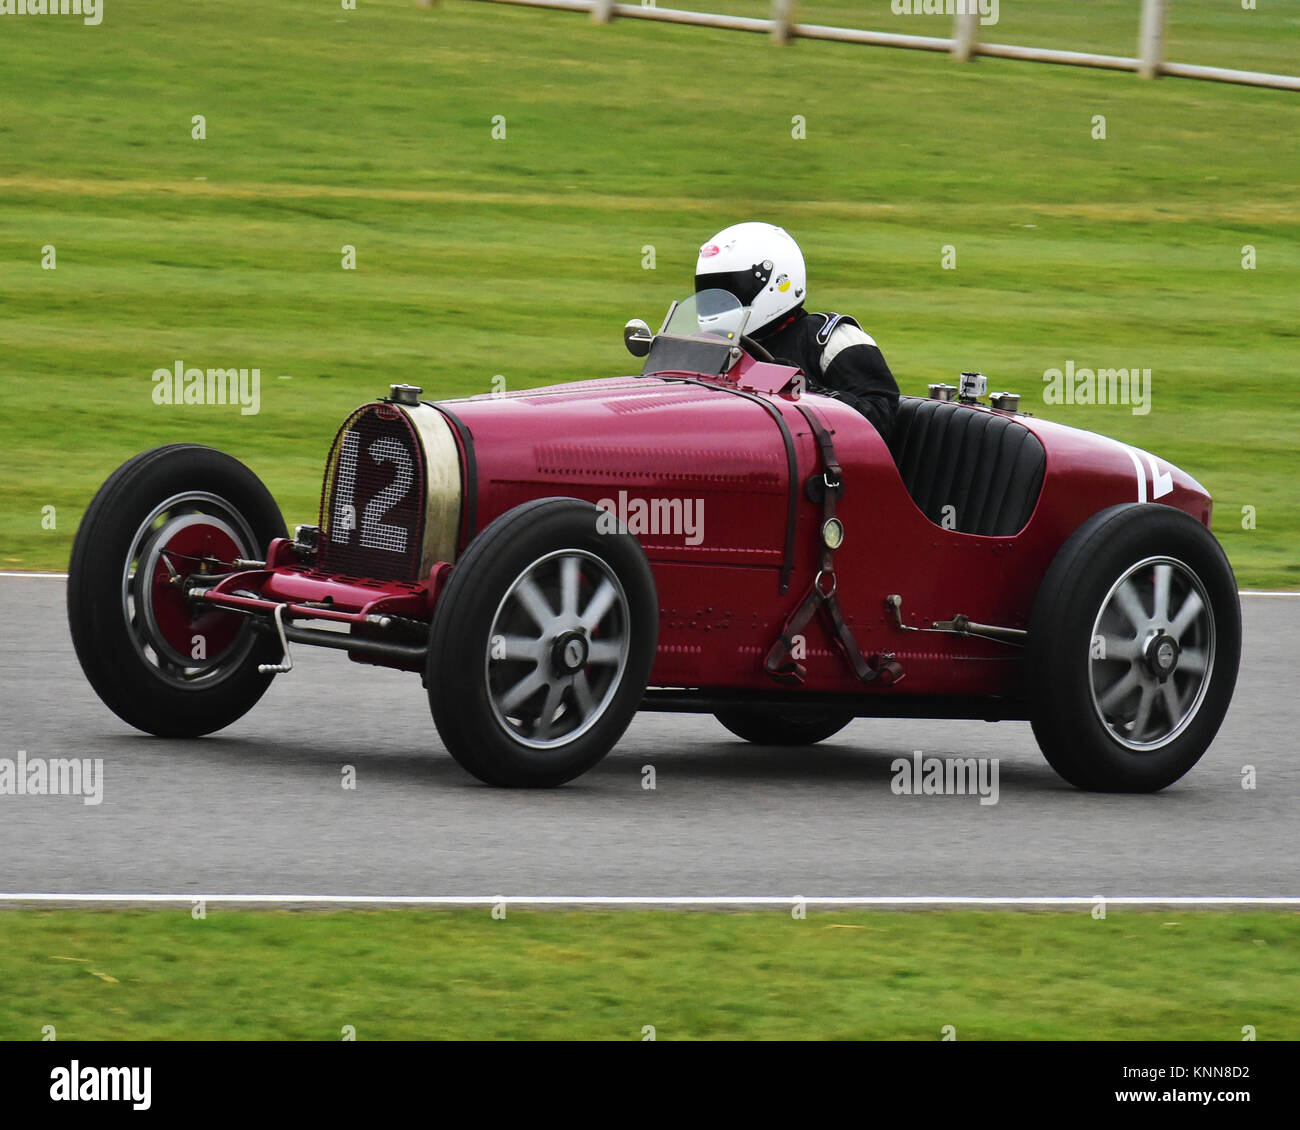 Charles Knill Jones, Bugatti Type 51, Earl Howe Trophy, Goodwood 73rd MM March 2015, 73rd, 73rd Members Meeting, - Stock Image